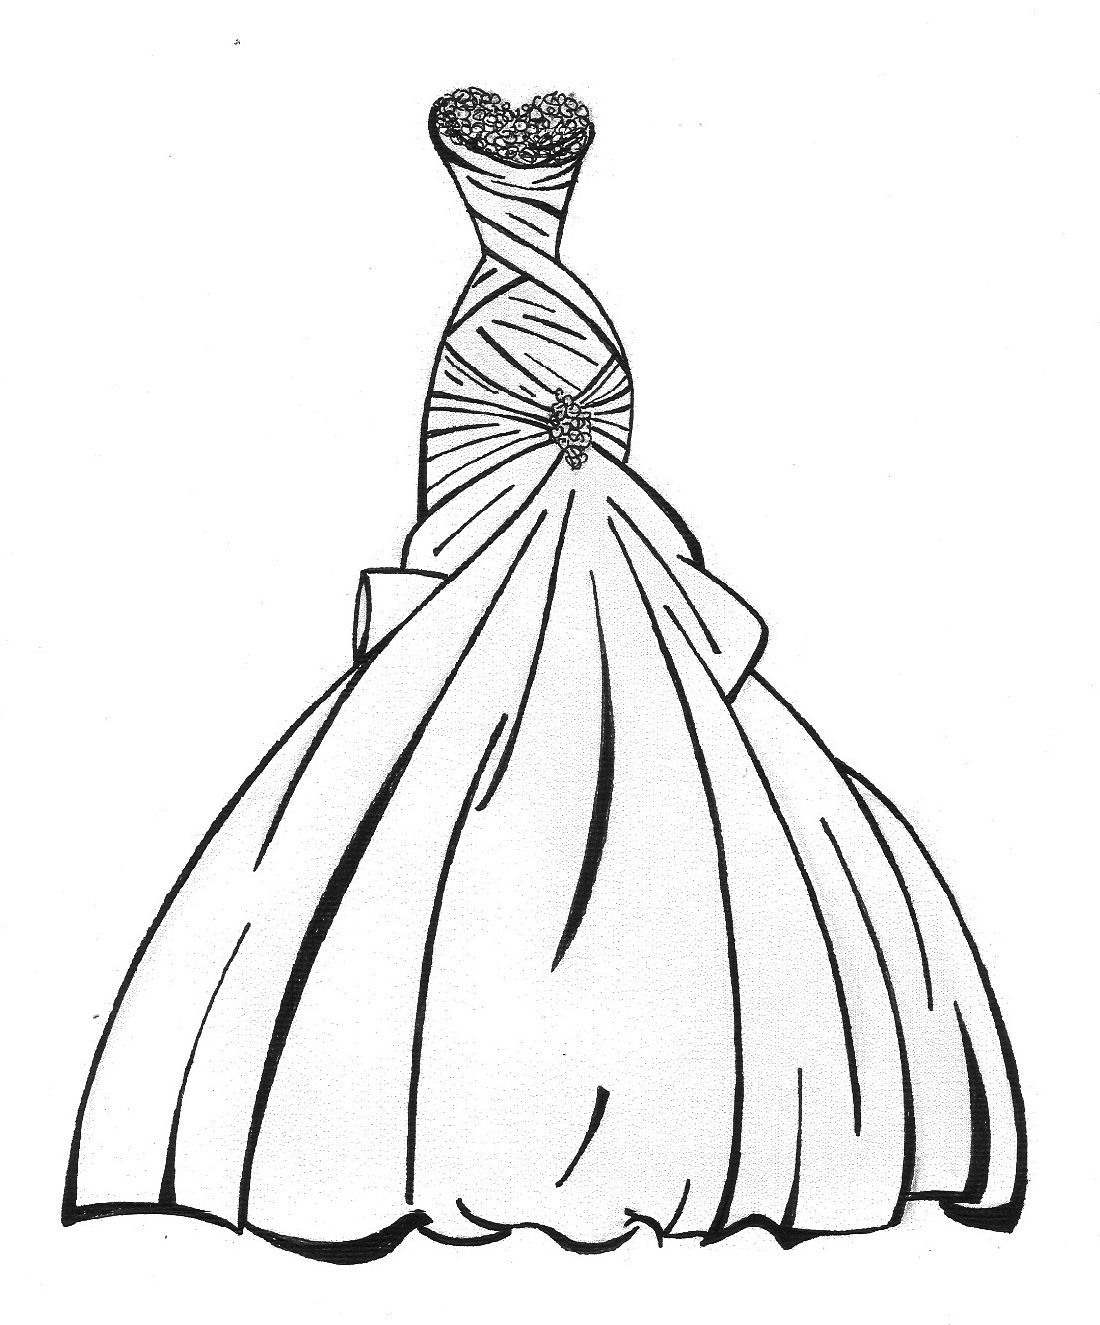 Wedding Dress Coloring Pages 2019 Educative Printable Coloring Pages For Girls Coloring Pages For Teenagers Coloring Pages